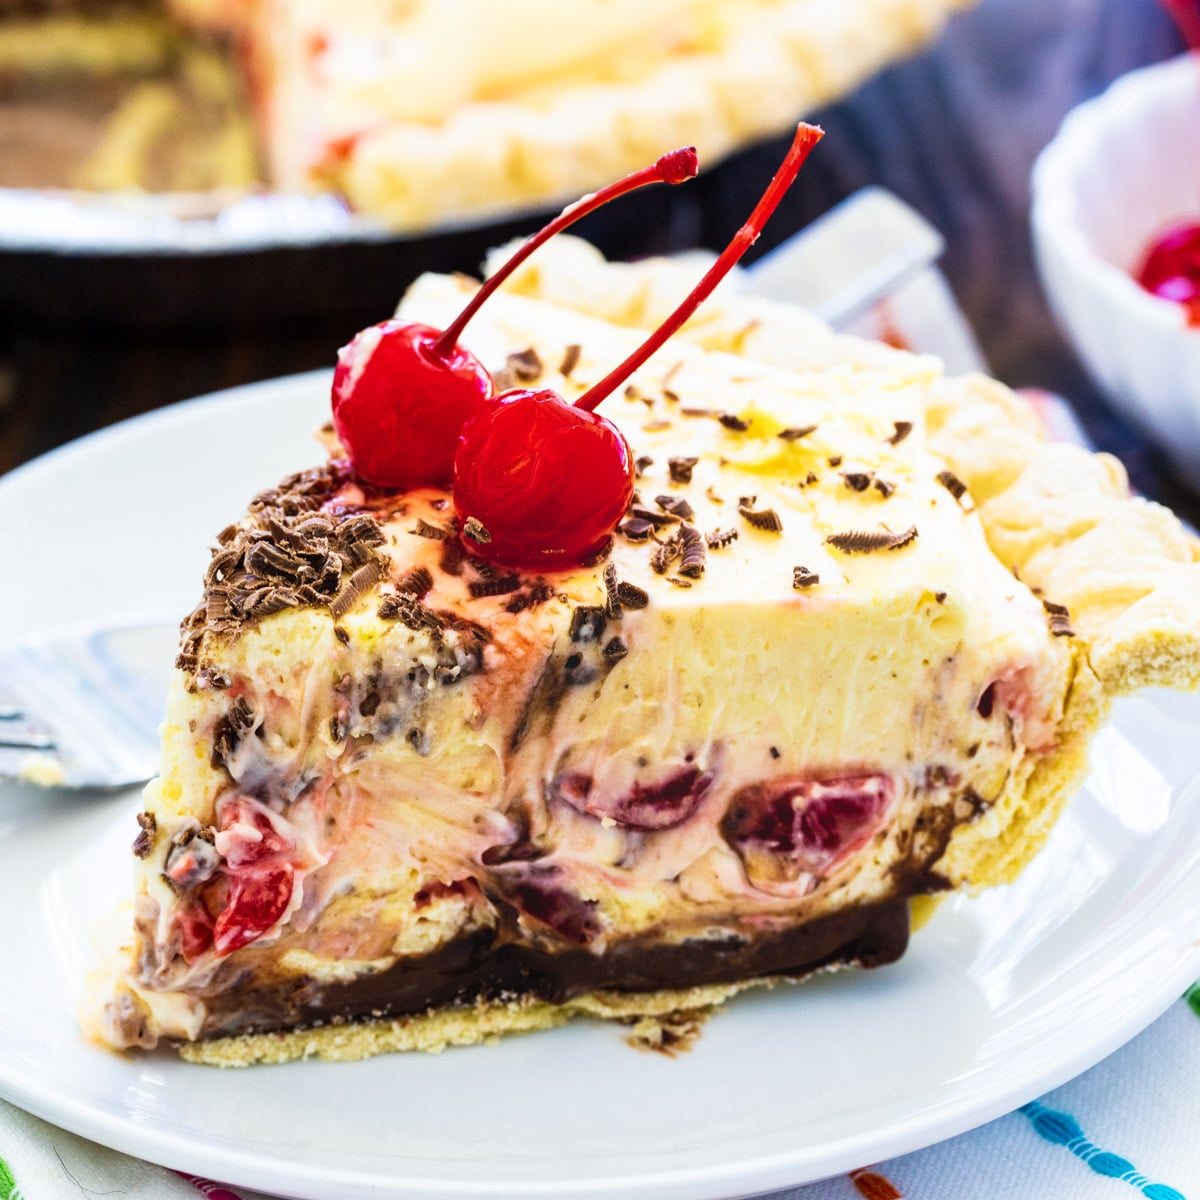 Slice of Cherry Almond Mousse Pie on a plate.